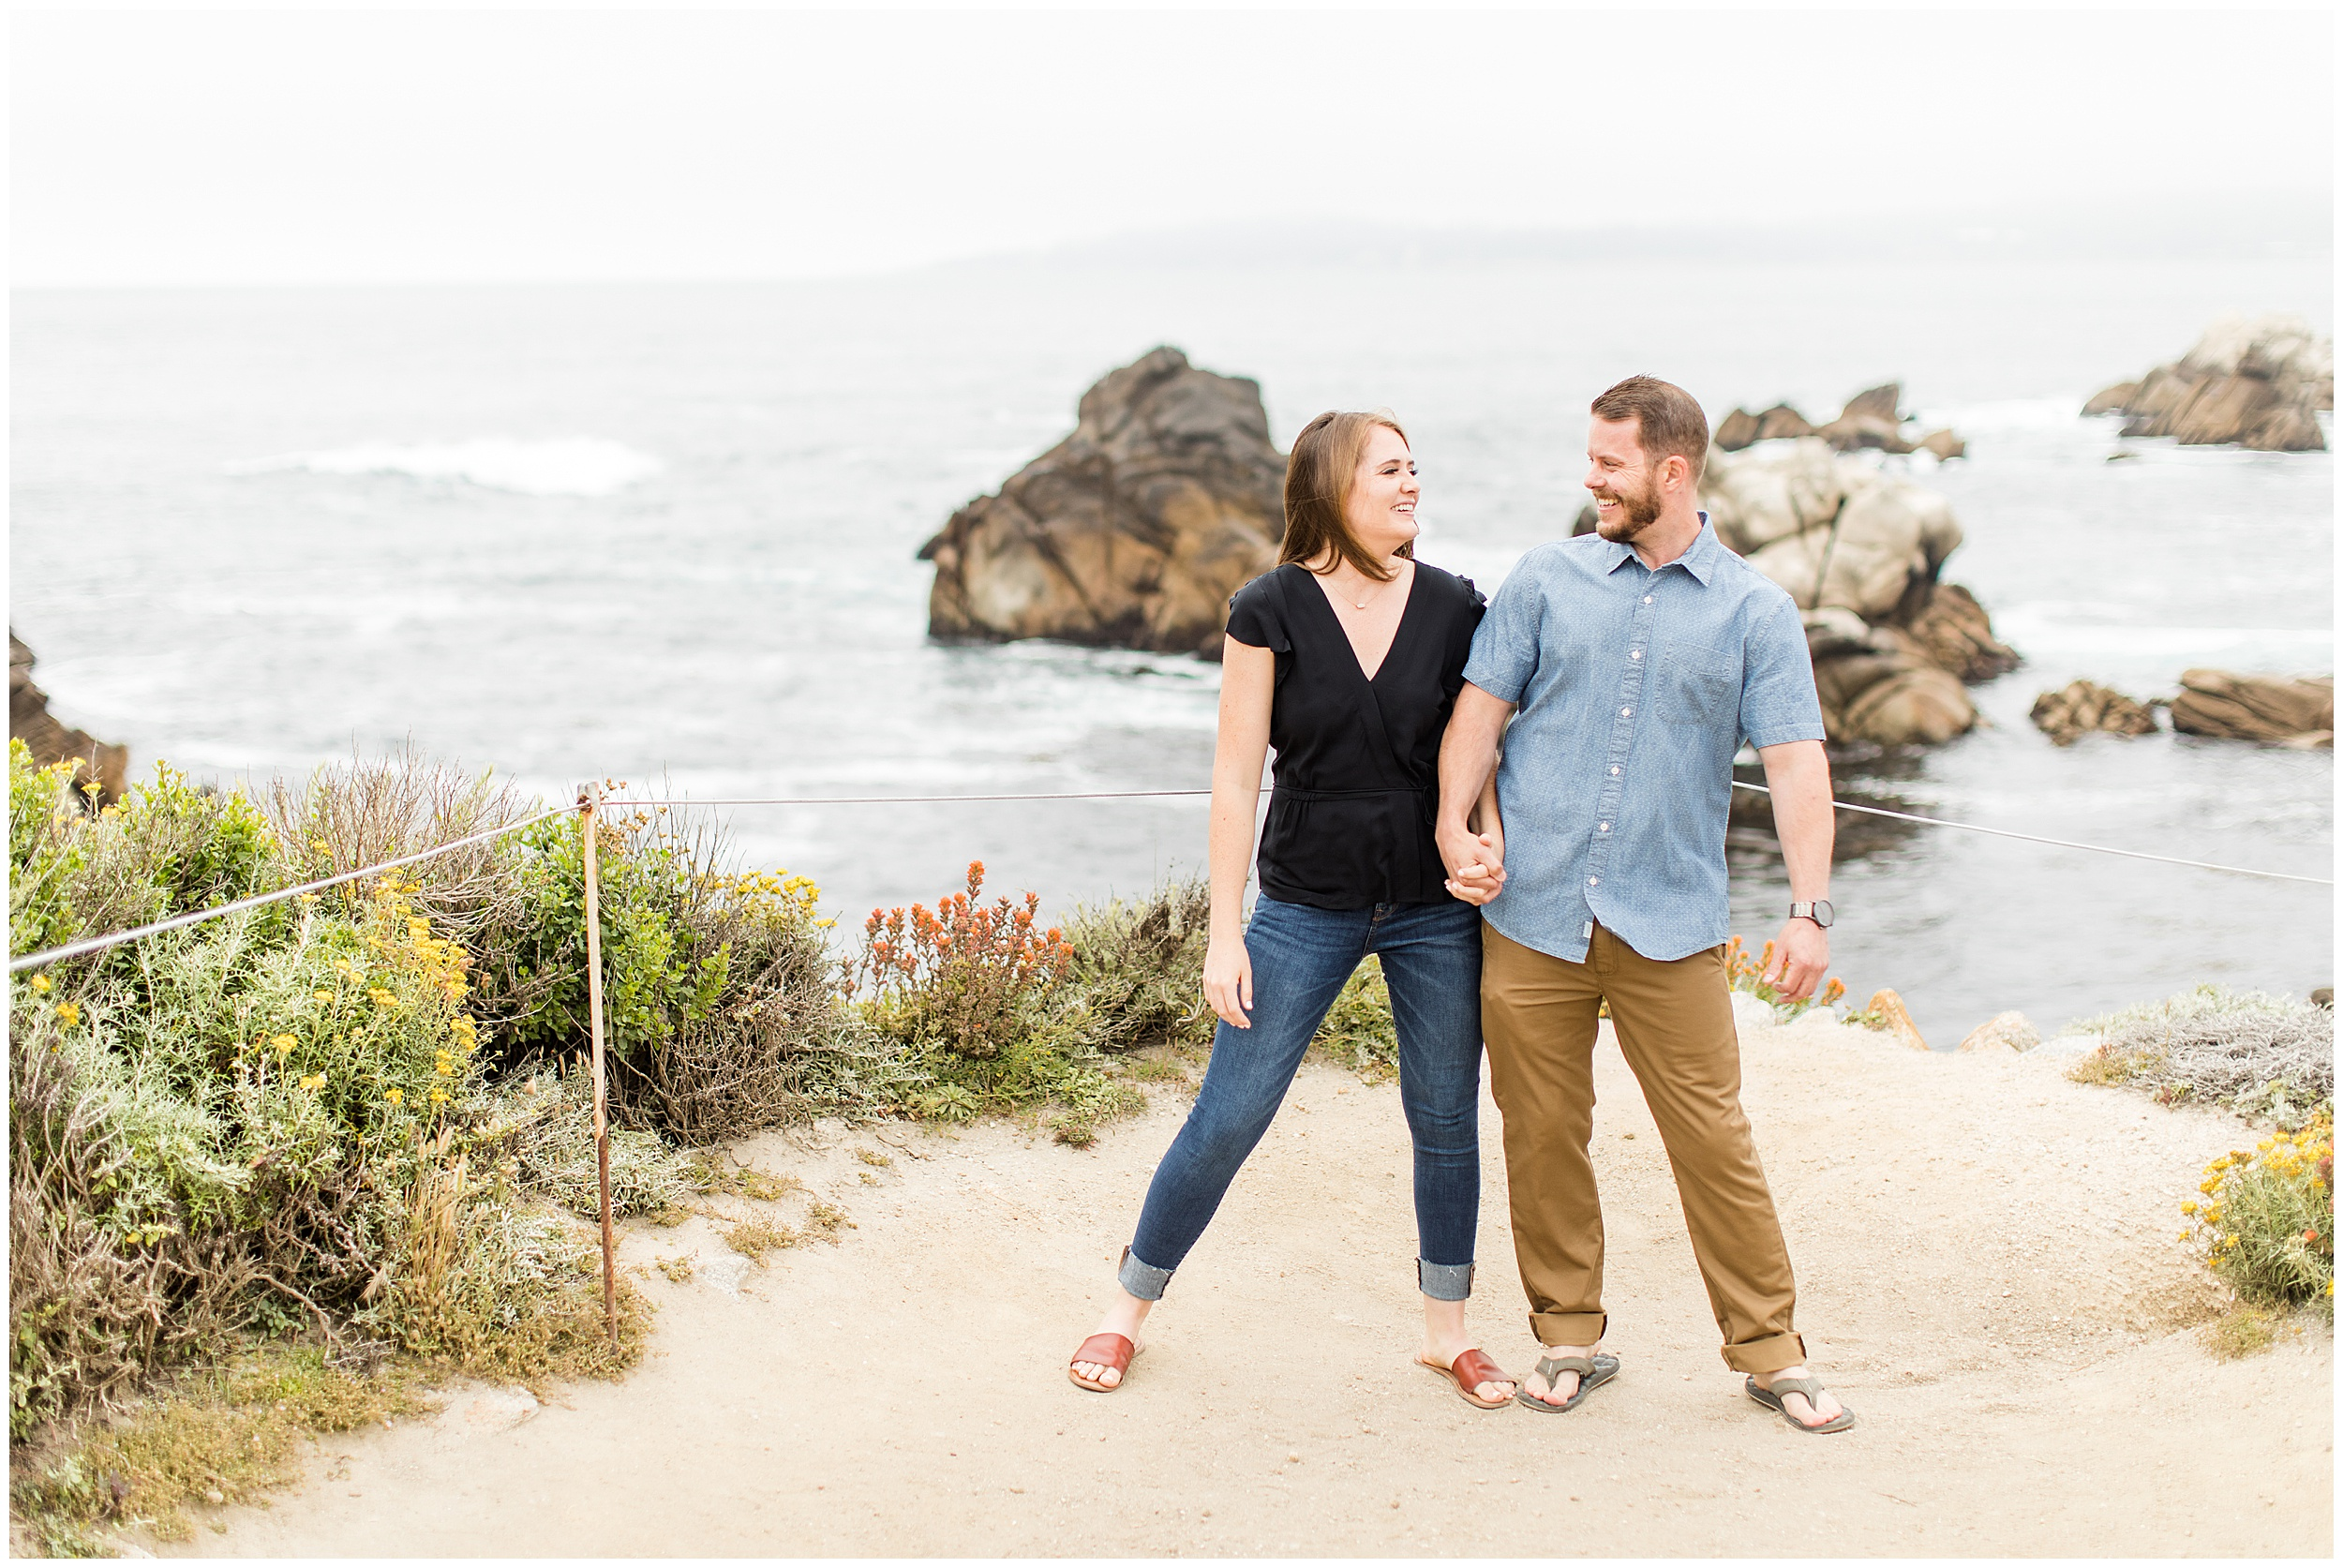 2019 carmel by the sea surprise proposal engagement session wedding photographer angela sue photography_0001.jpg